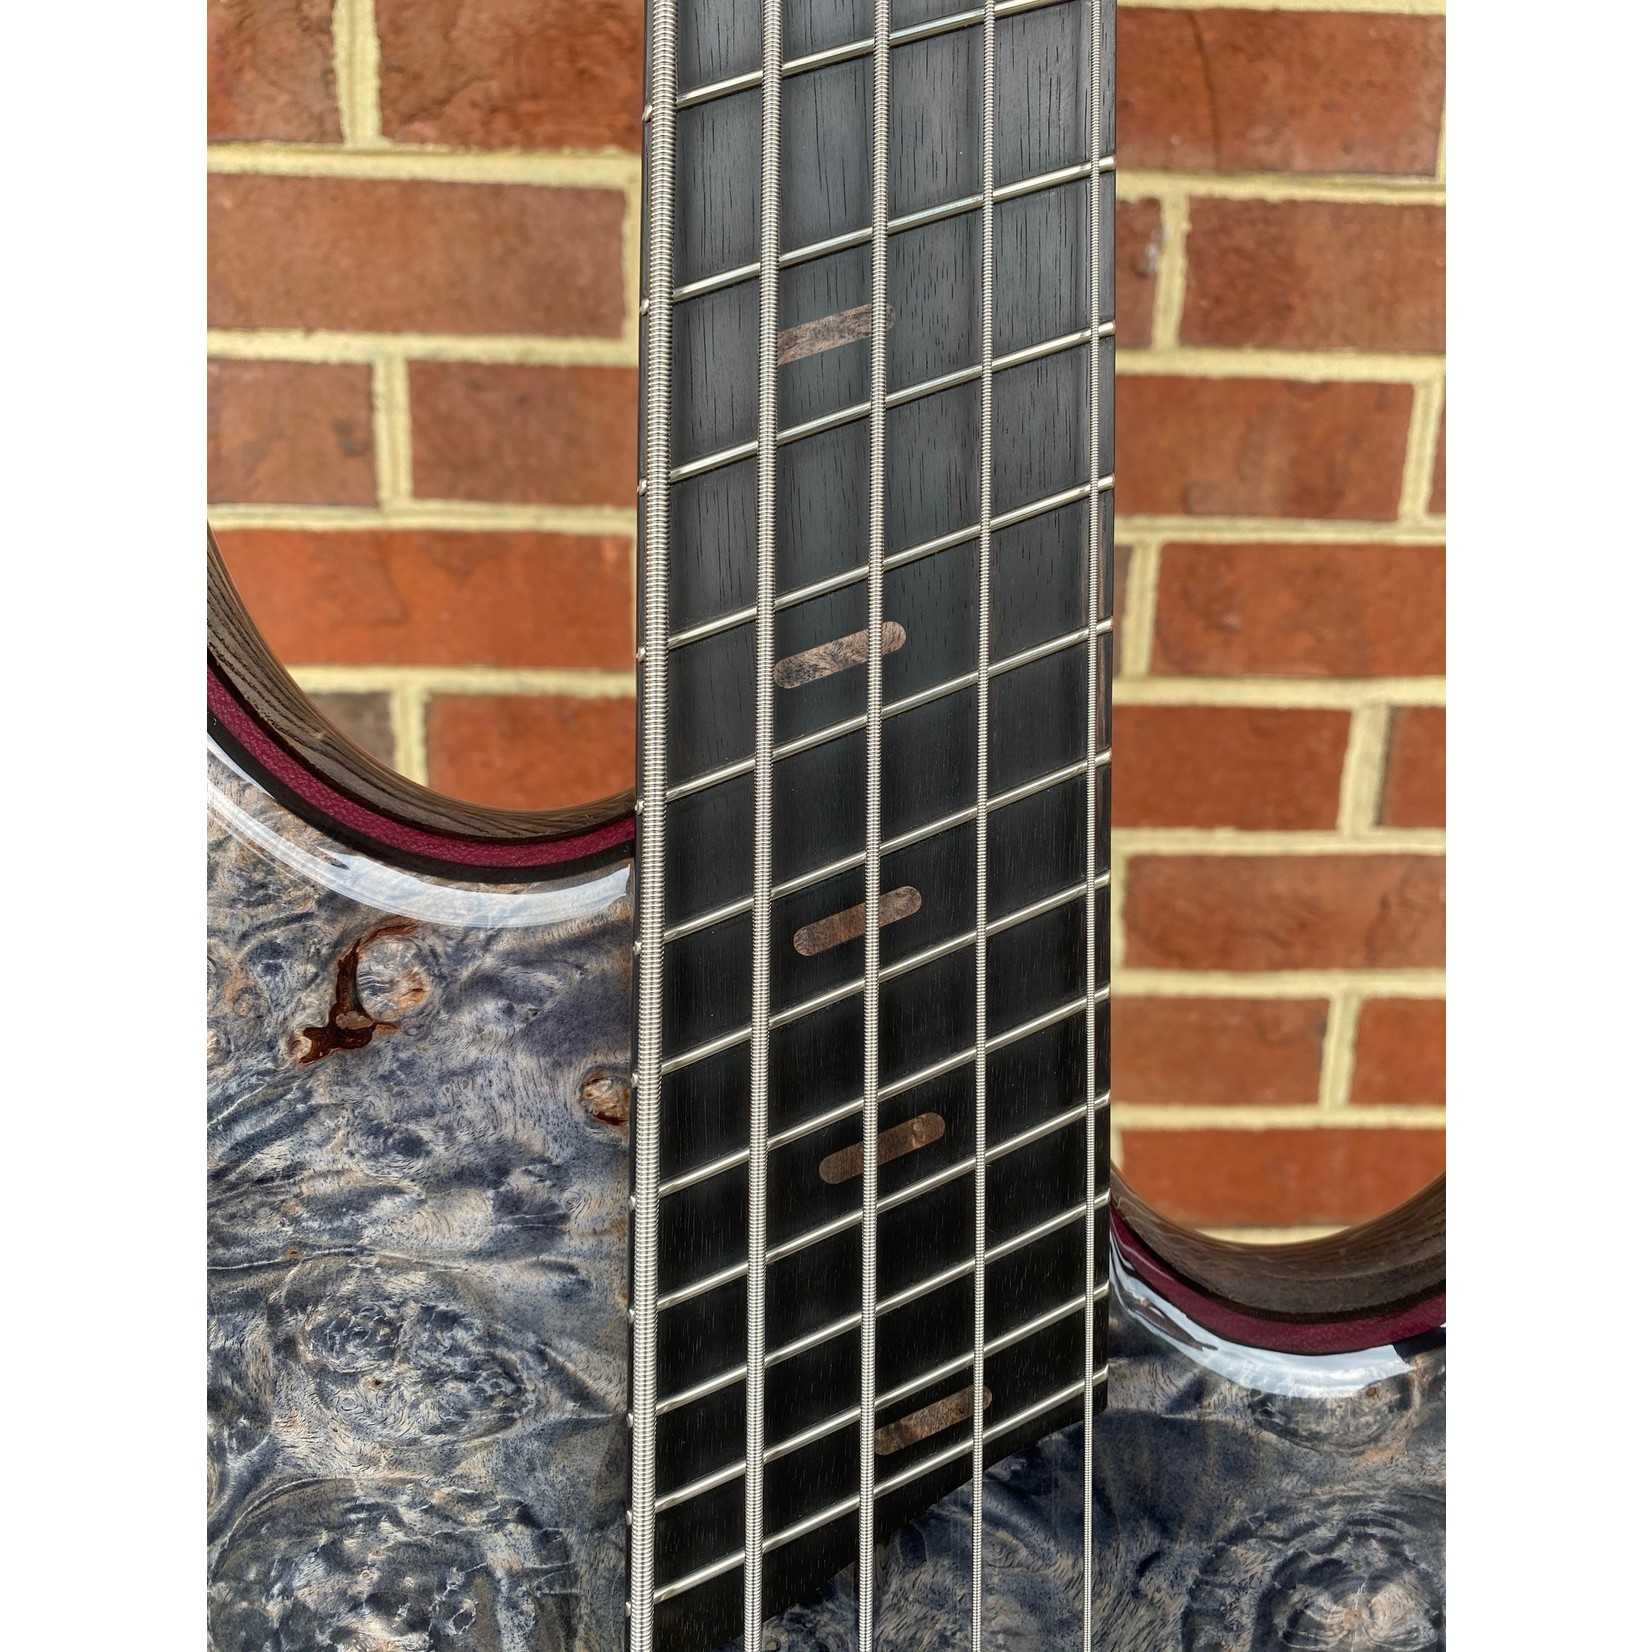 Dingwall Dingwall Custom Z3, 5-String, Dual-Density Swamp Ash Body, Burled Maple Top (#1530), Wenge/Purple Heart/Wenge Contrast Layer, Pre Bleached Trans Black Finish, Darkglass 3-band preamp, Wenge Neck with Ebony Fretboard, Matching Wood Speedo Bars